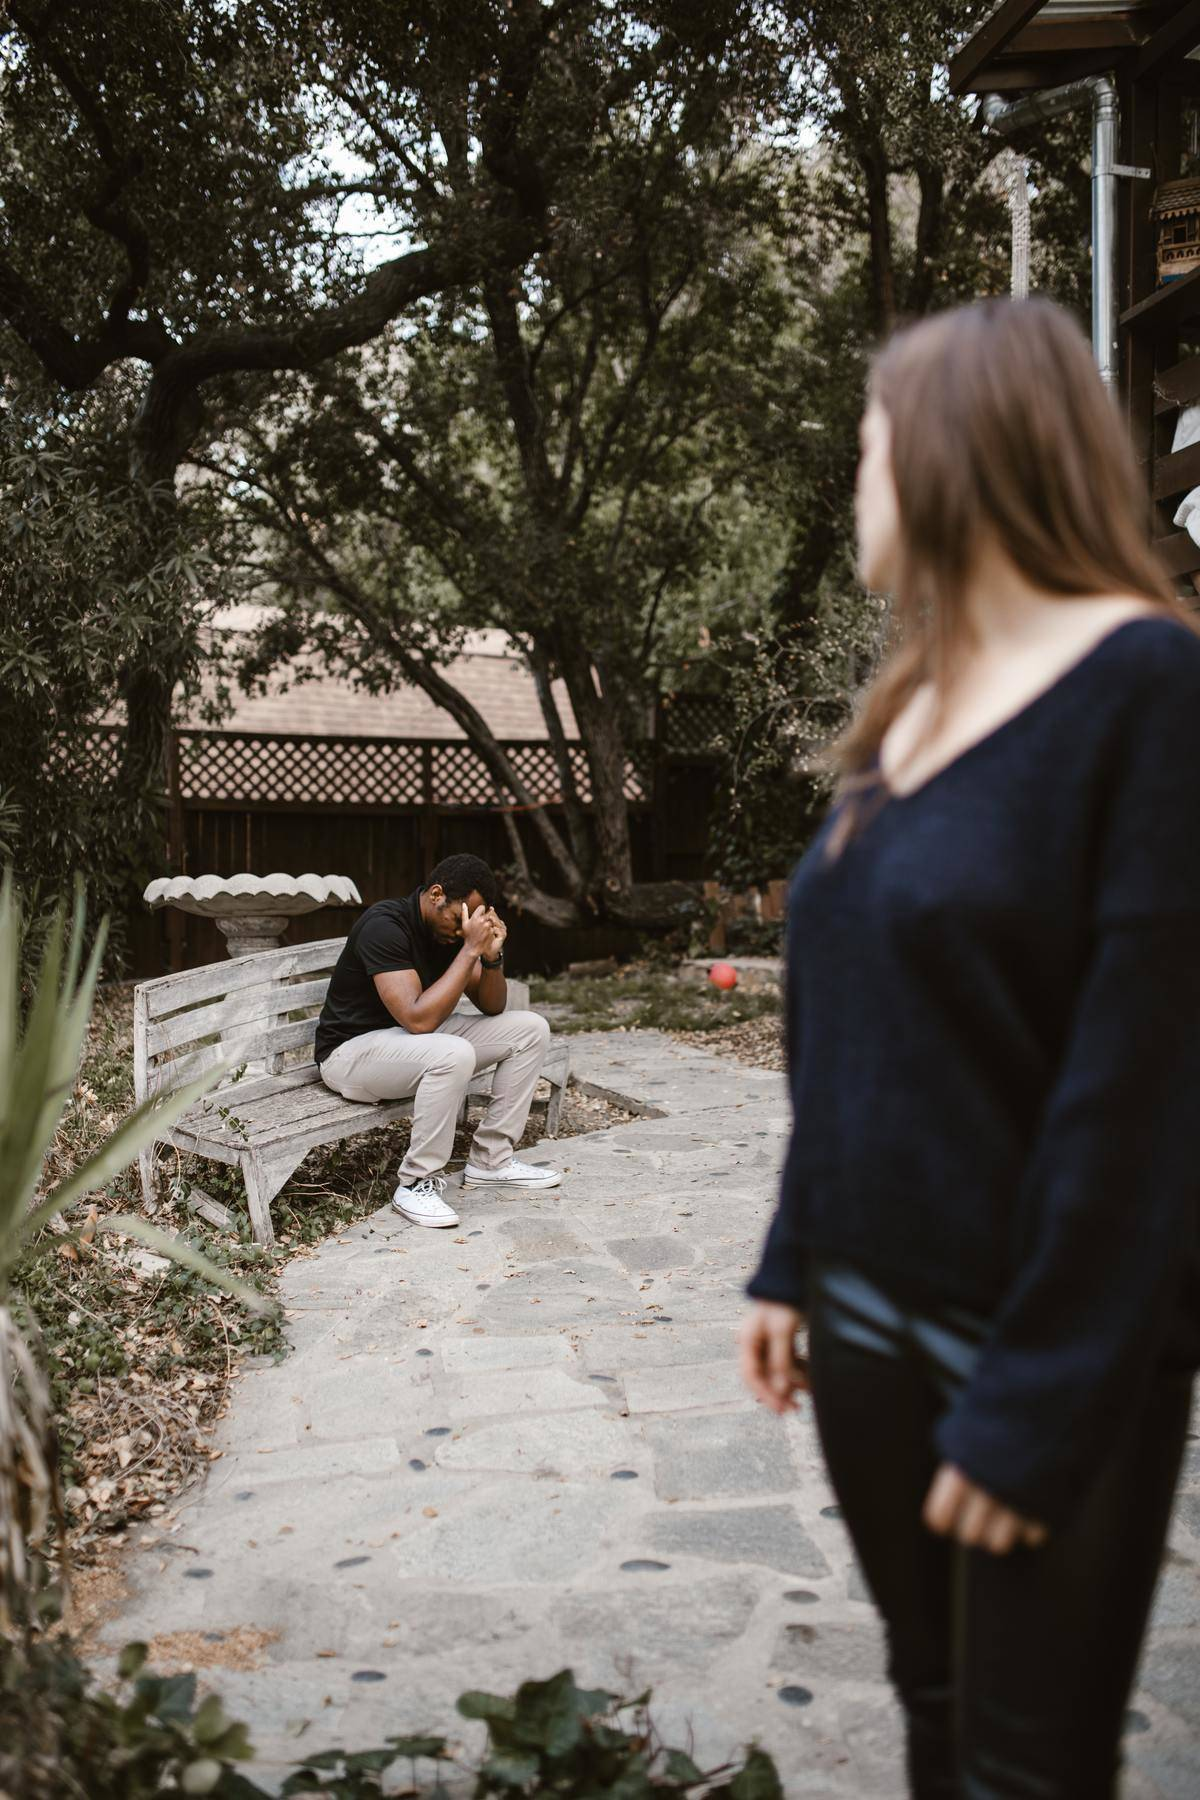 Woman walking away from man who is seated on bench